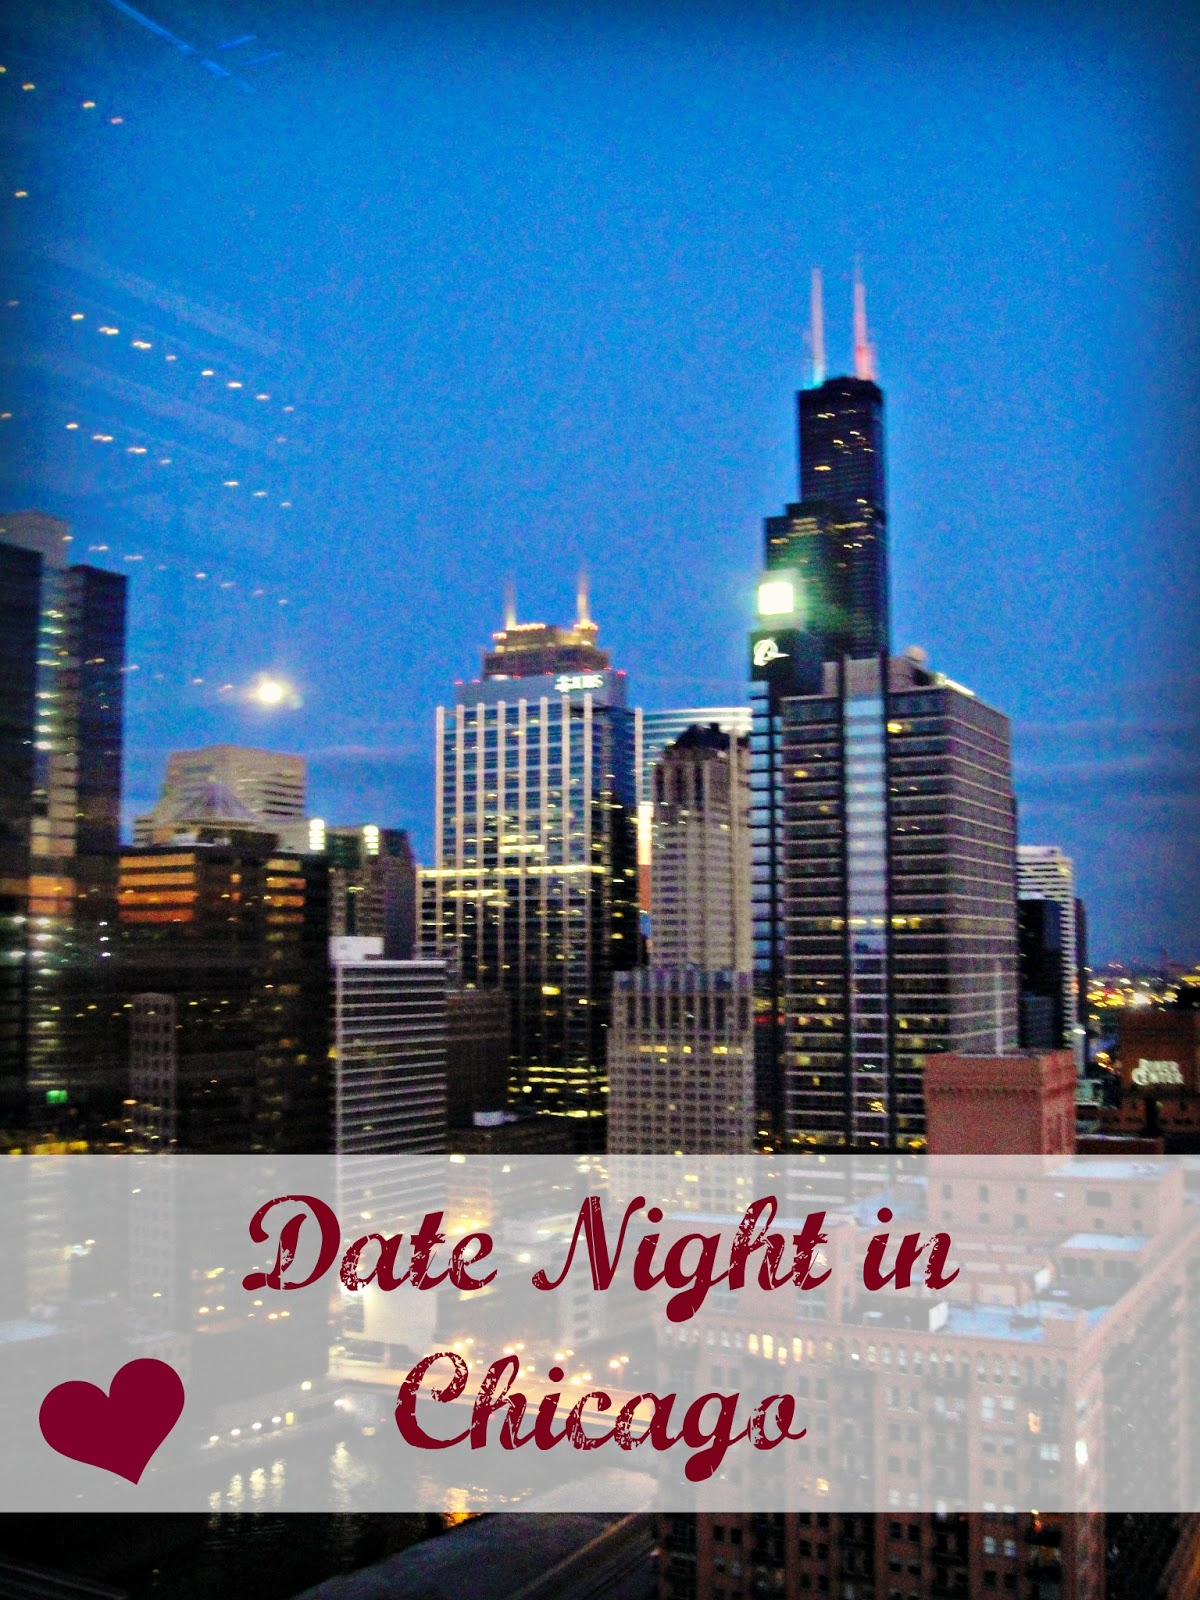 Chicago date ideas in Perth